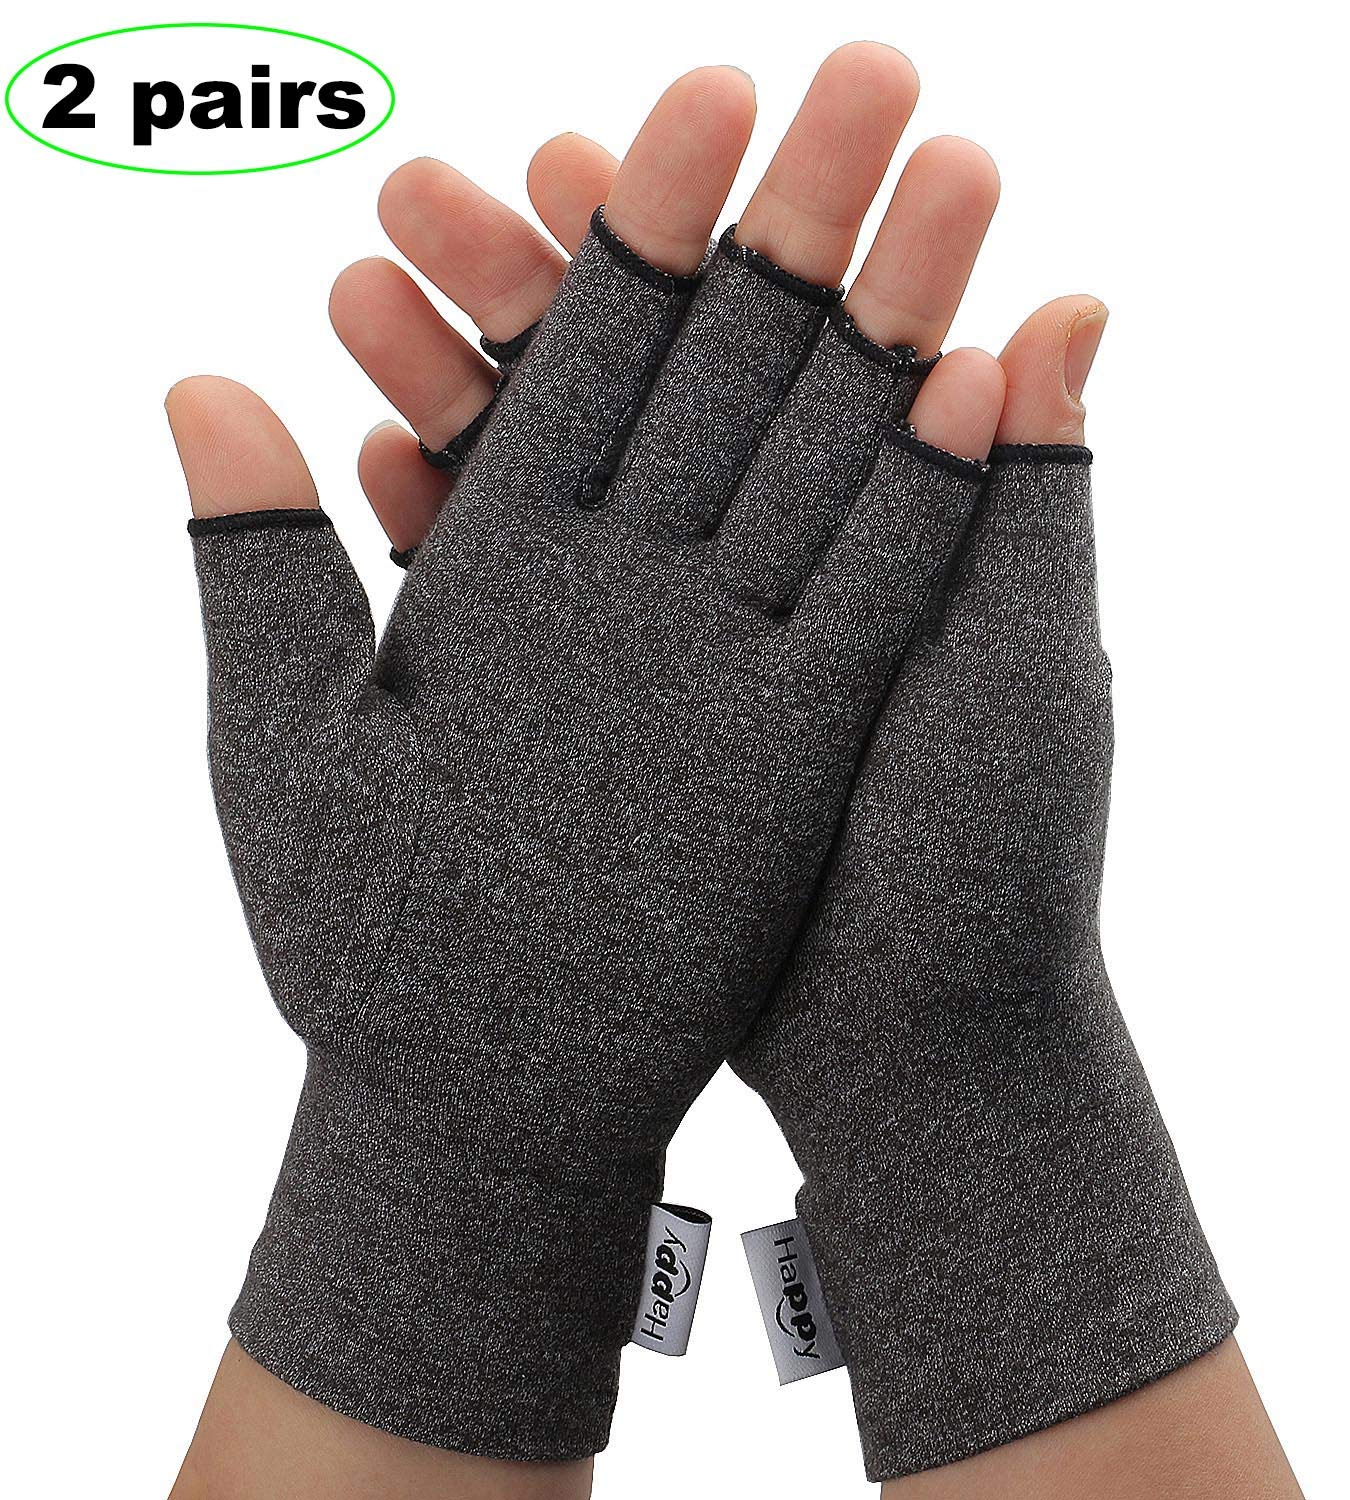 2 Pairs Compression Arthritis Gloves, Fingerless Hand Gloves for Rheumatoid & Osteoarthritis - Joint Pain and Carpel Tunnel Relief-Men & Women (Medium-2 Pairs)